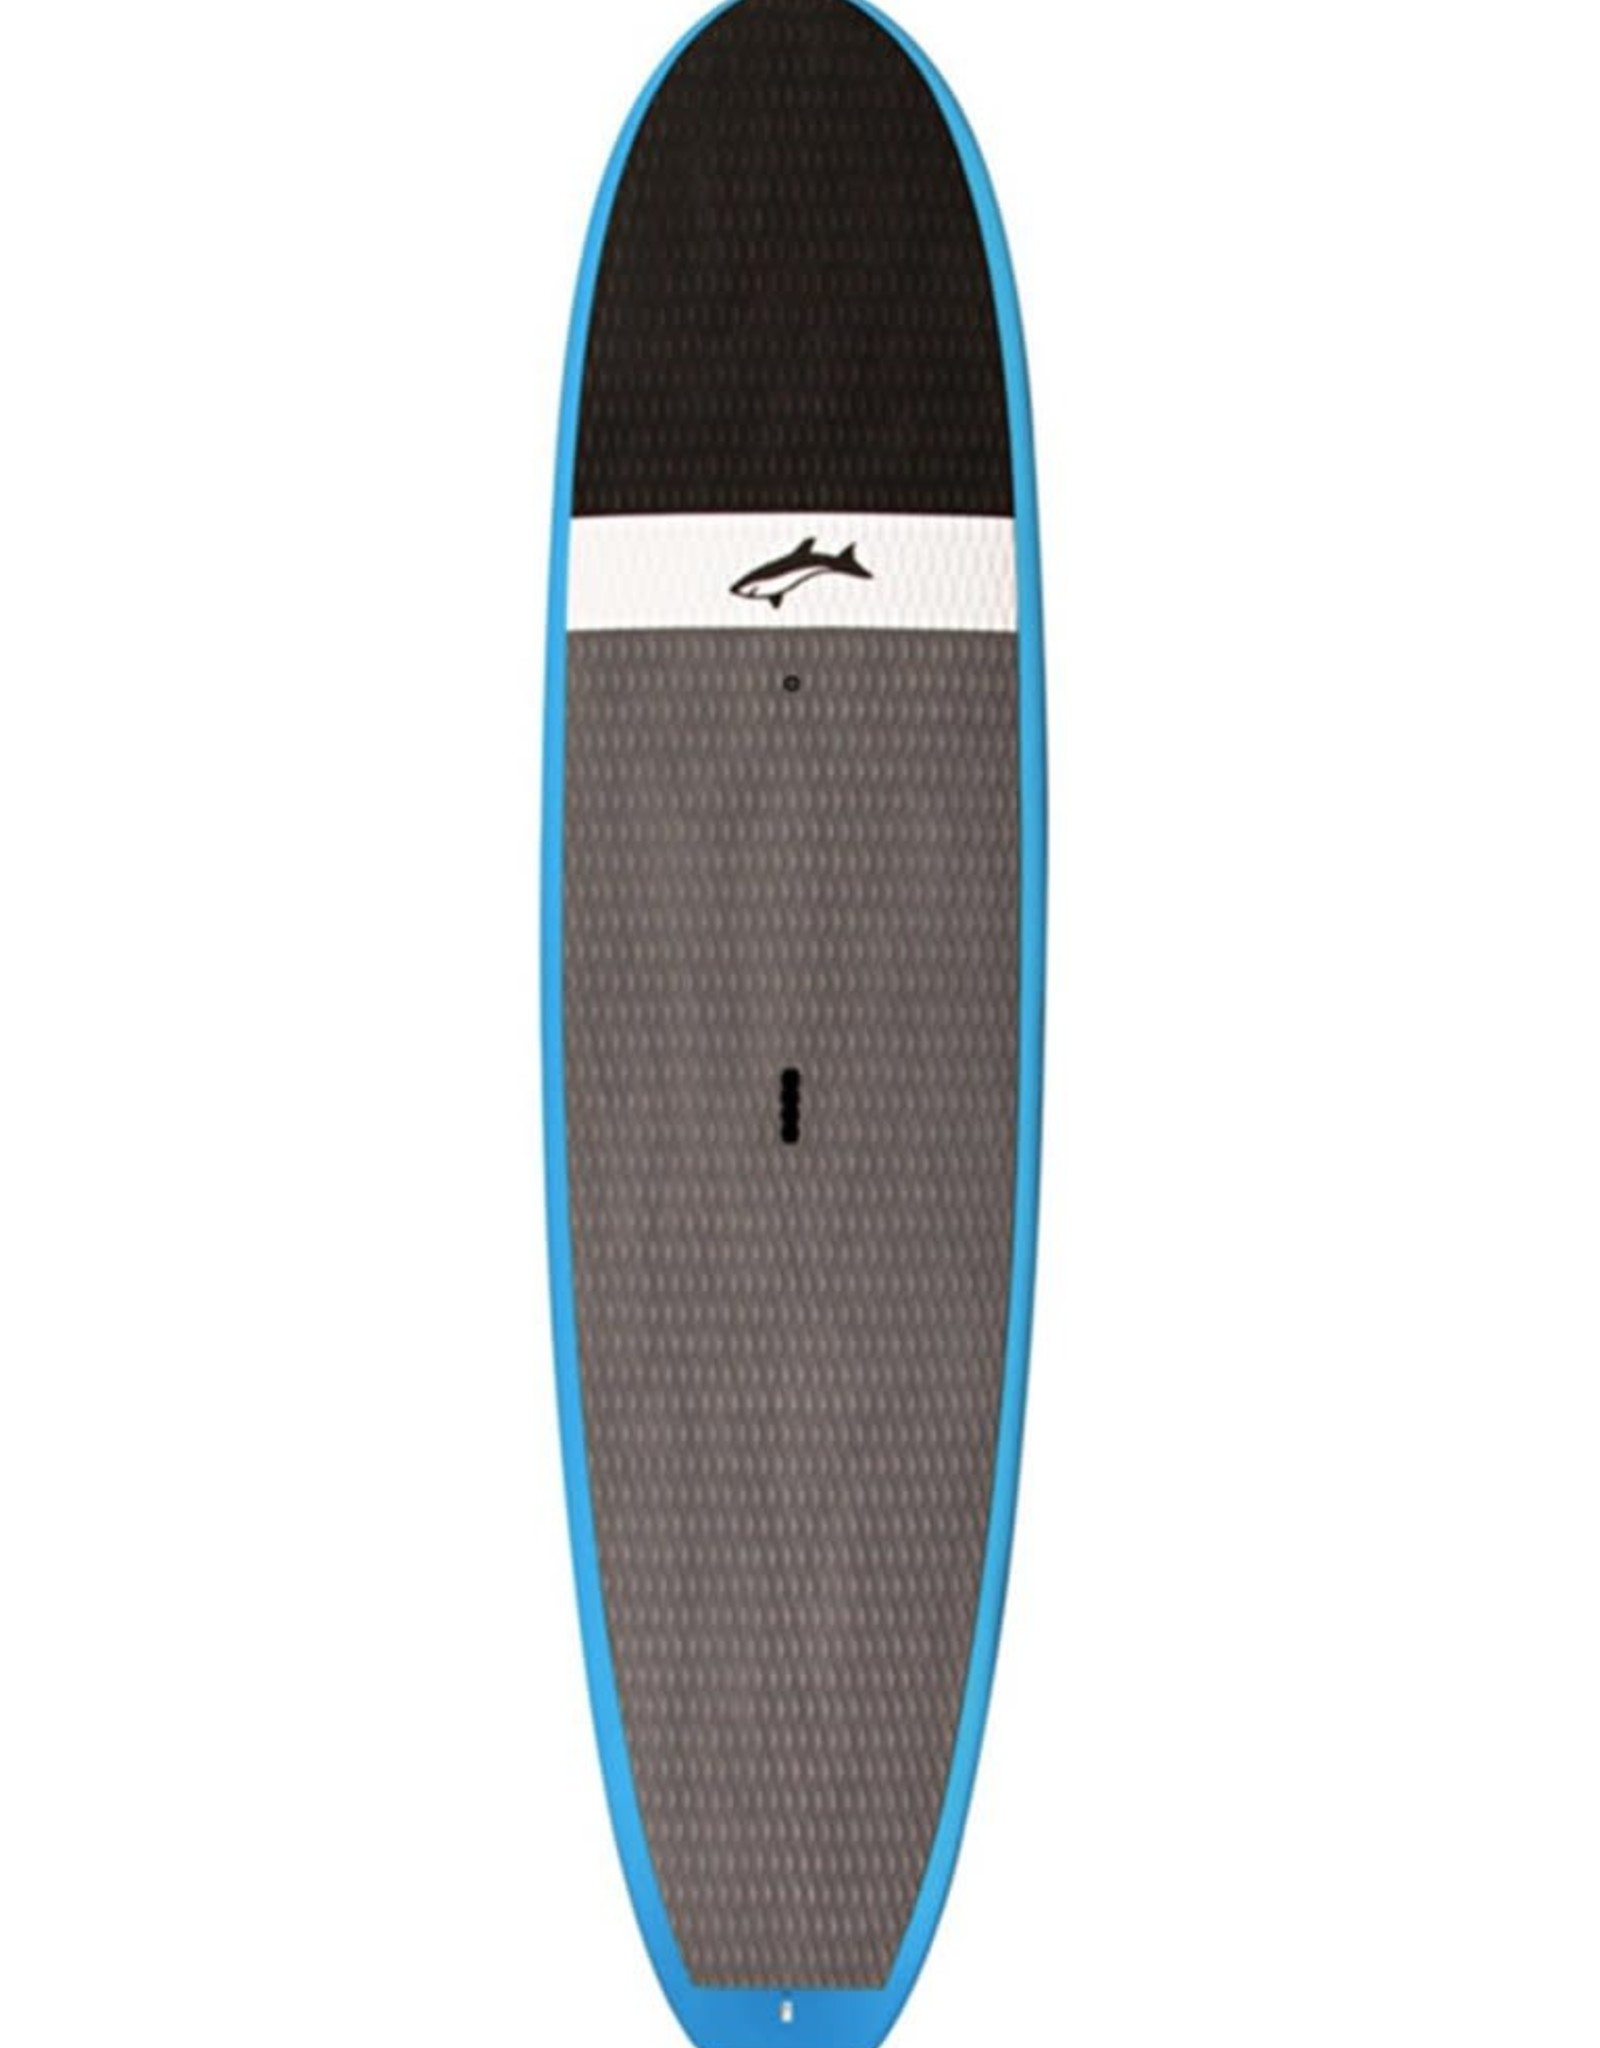 Jimmy Lewis JIMMY LEWIS BLACK AND BLUE MACHINE 9'6 Blue flat nose